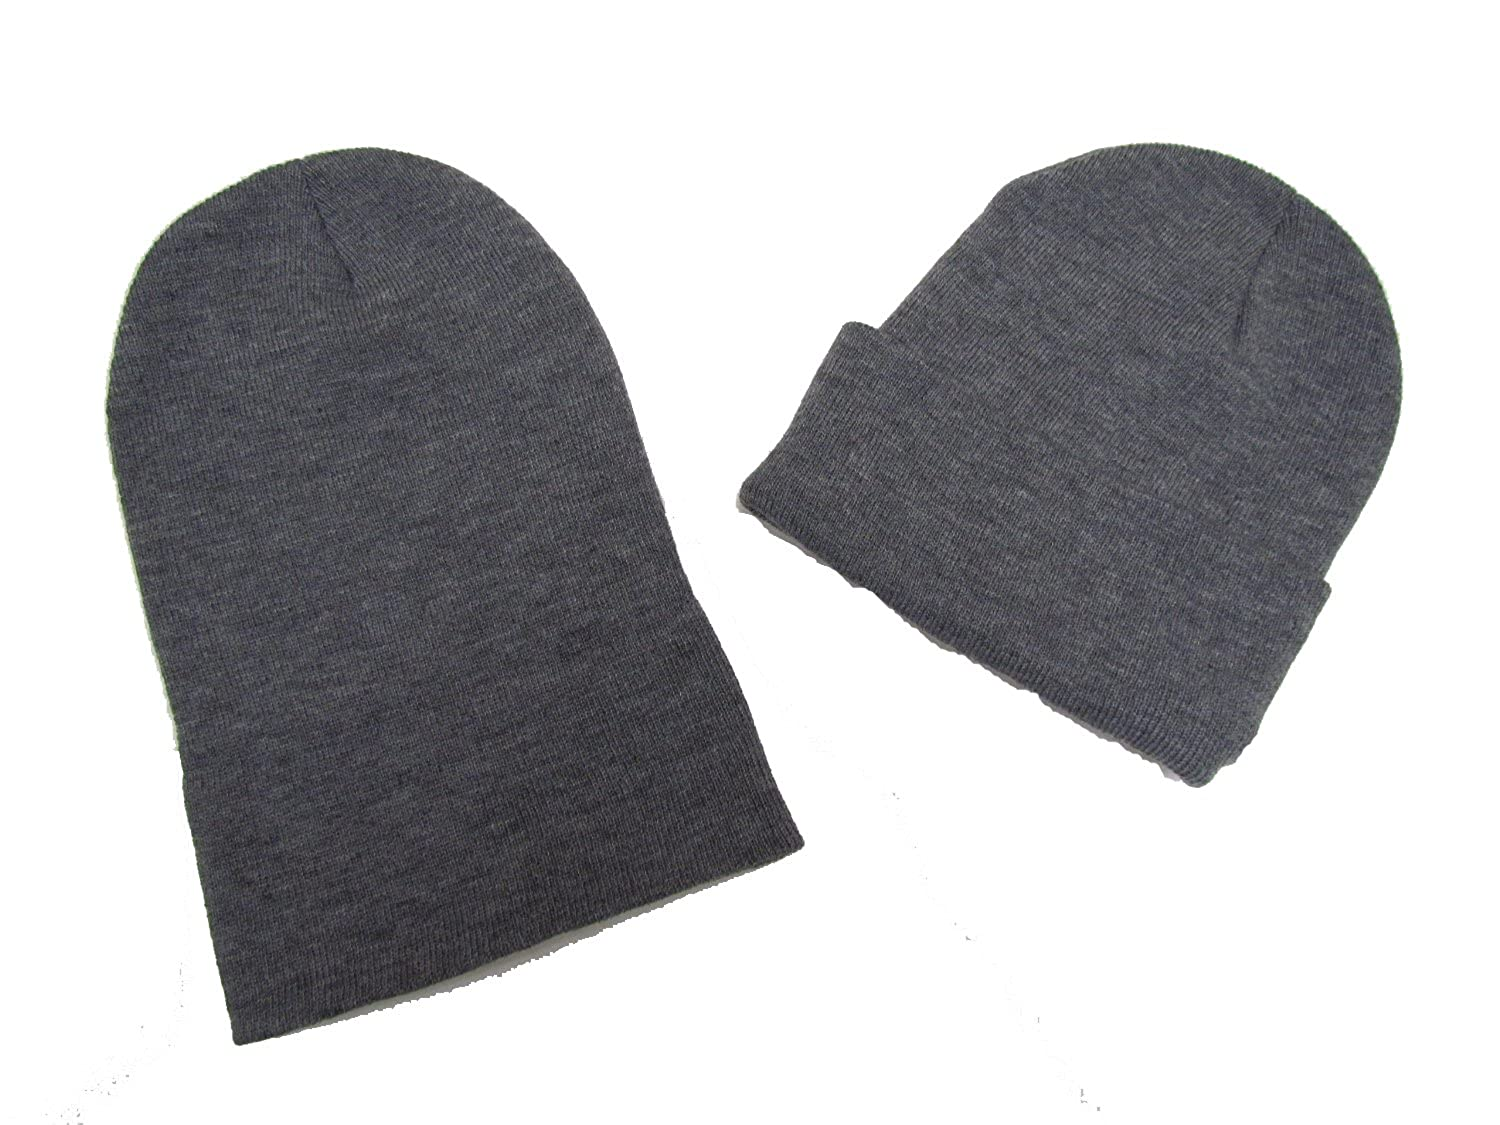 Amazon.com  Black Friday  Cyber Monday Deal! 2 Pack Knit Beanies  Gray   Clothing 424bee37bf8